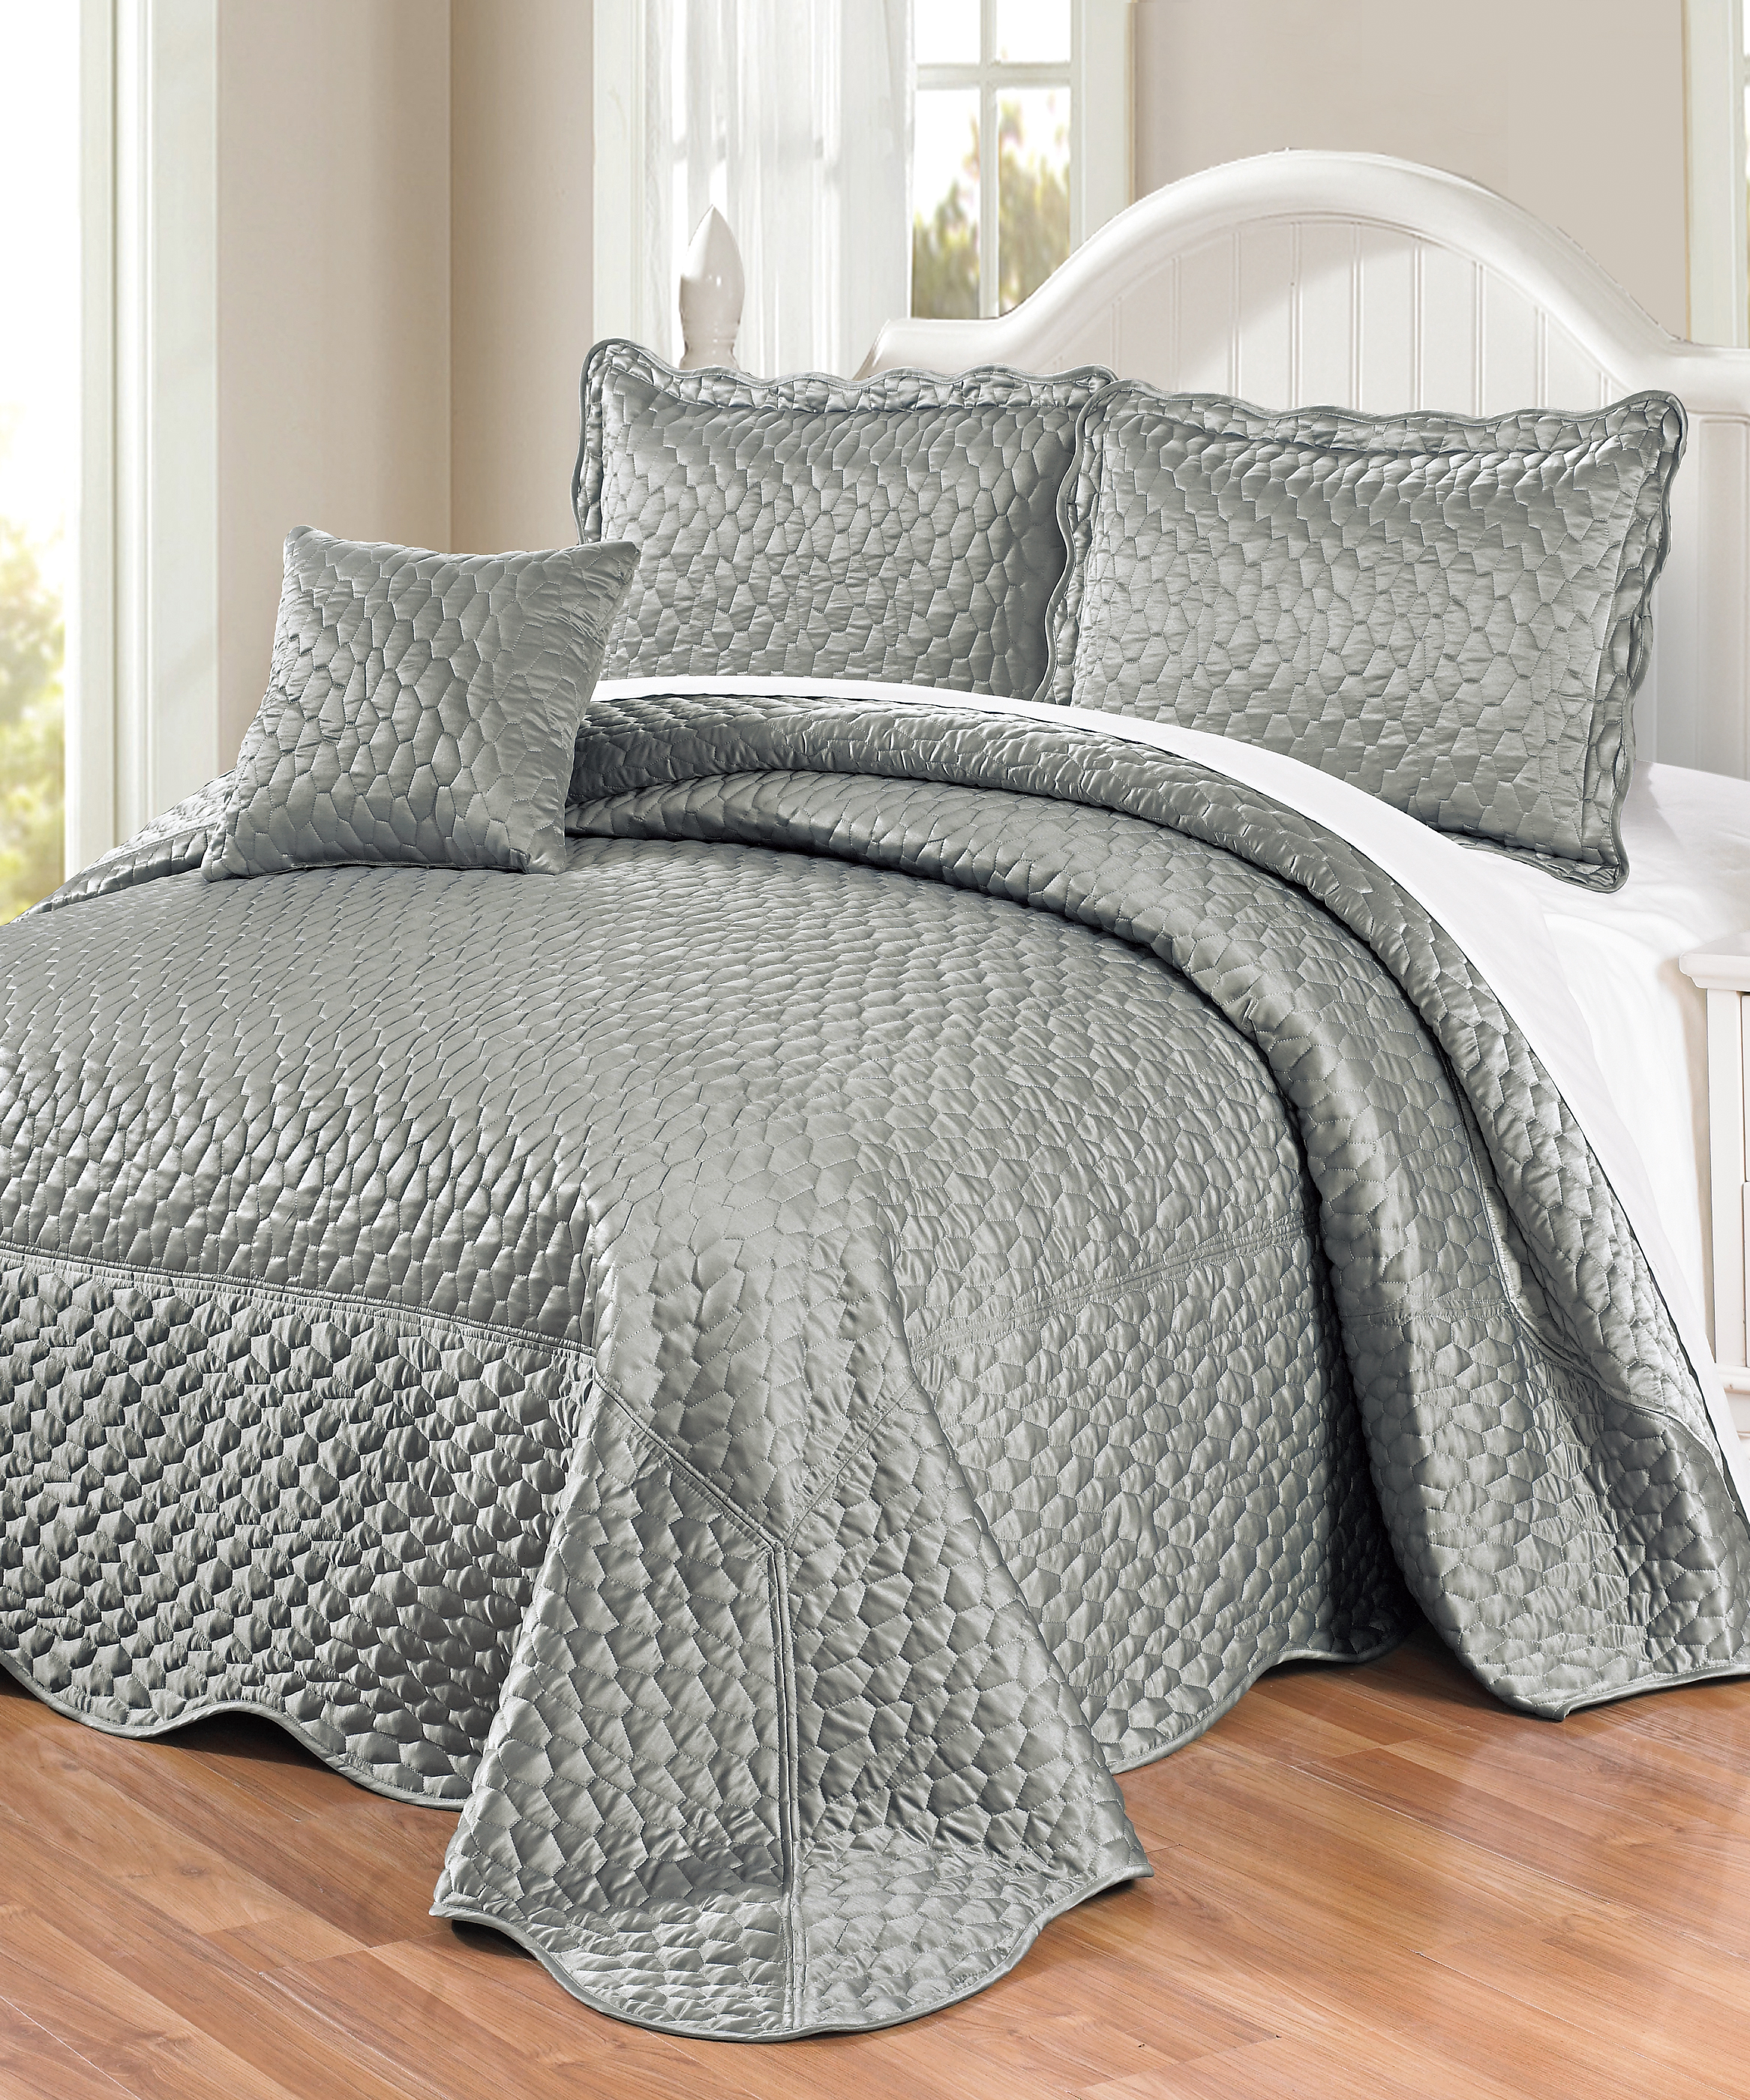 Matte Satin Quilted 4 Piece Bedspread Set